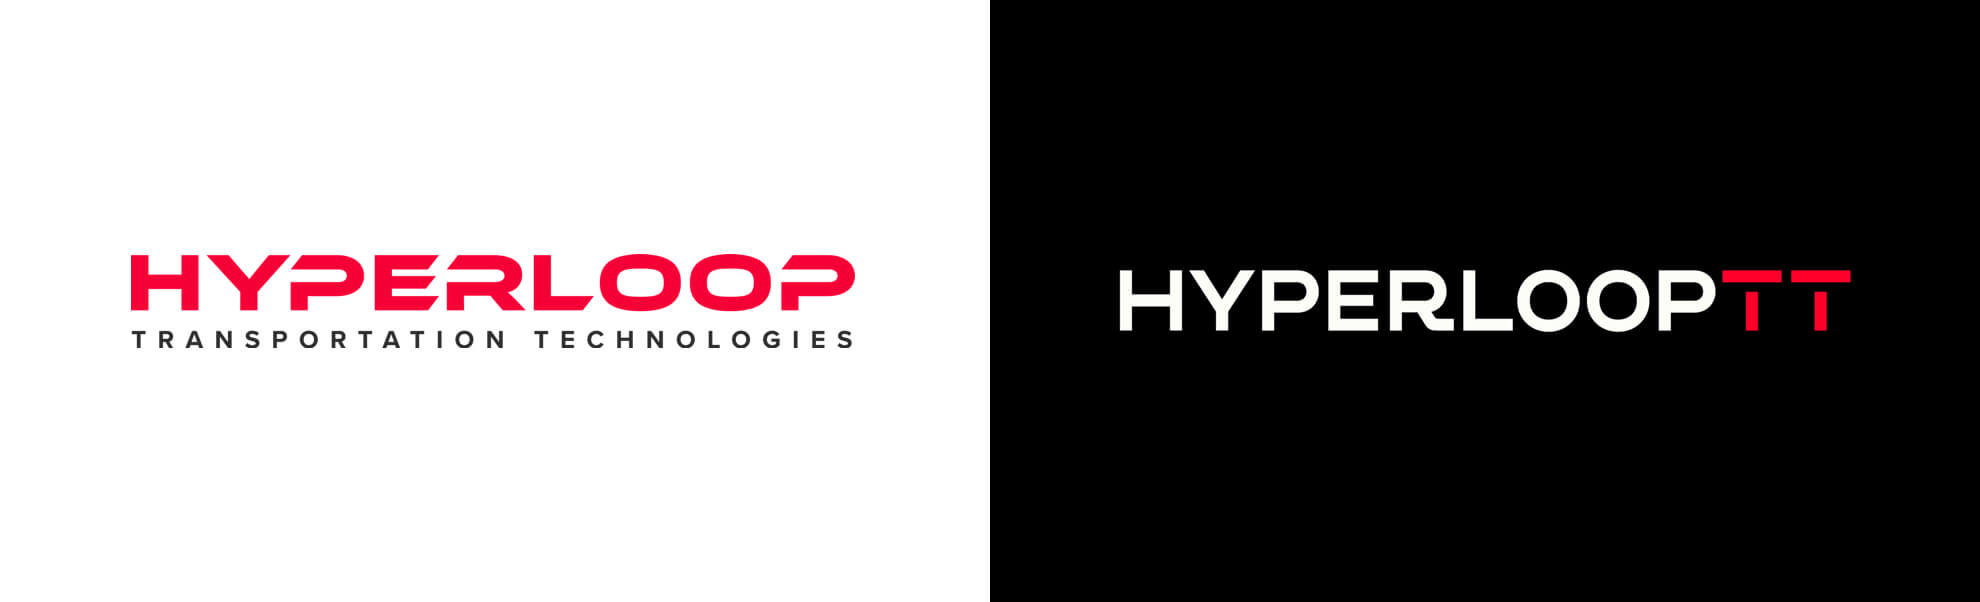 stare i nowe logo hyperloop